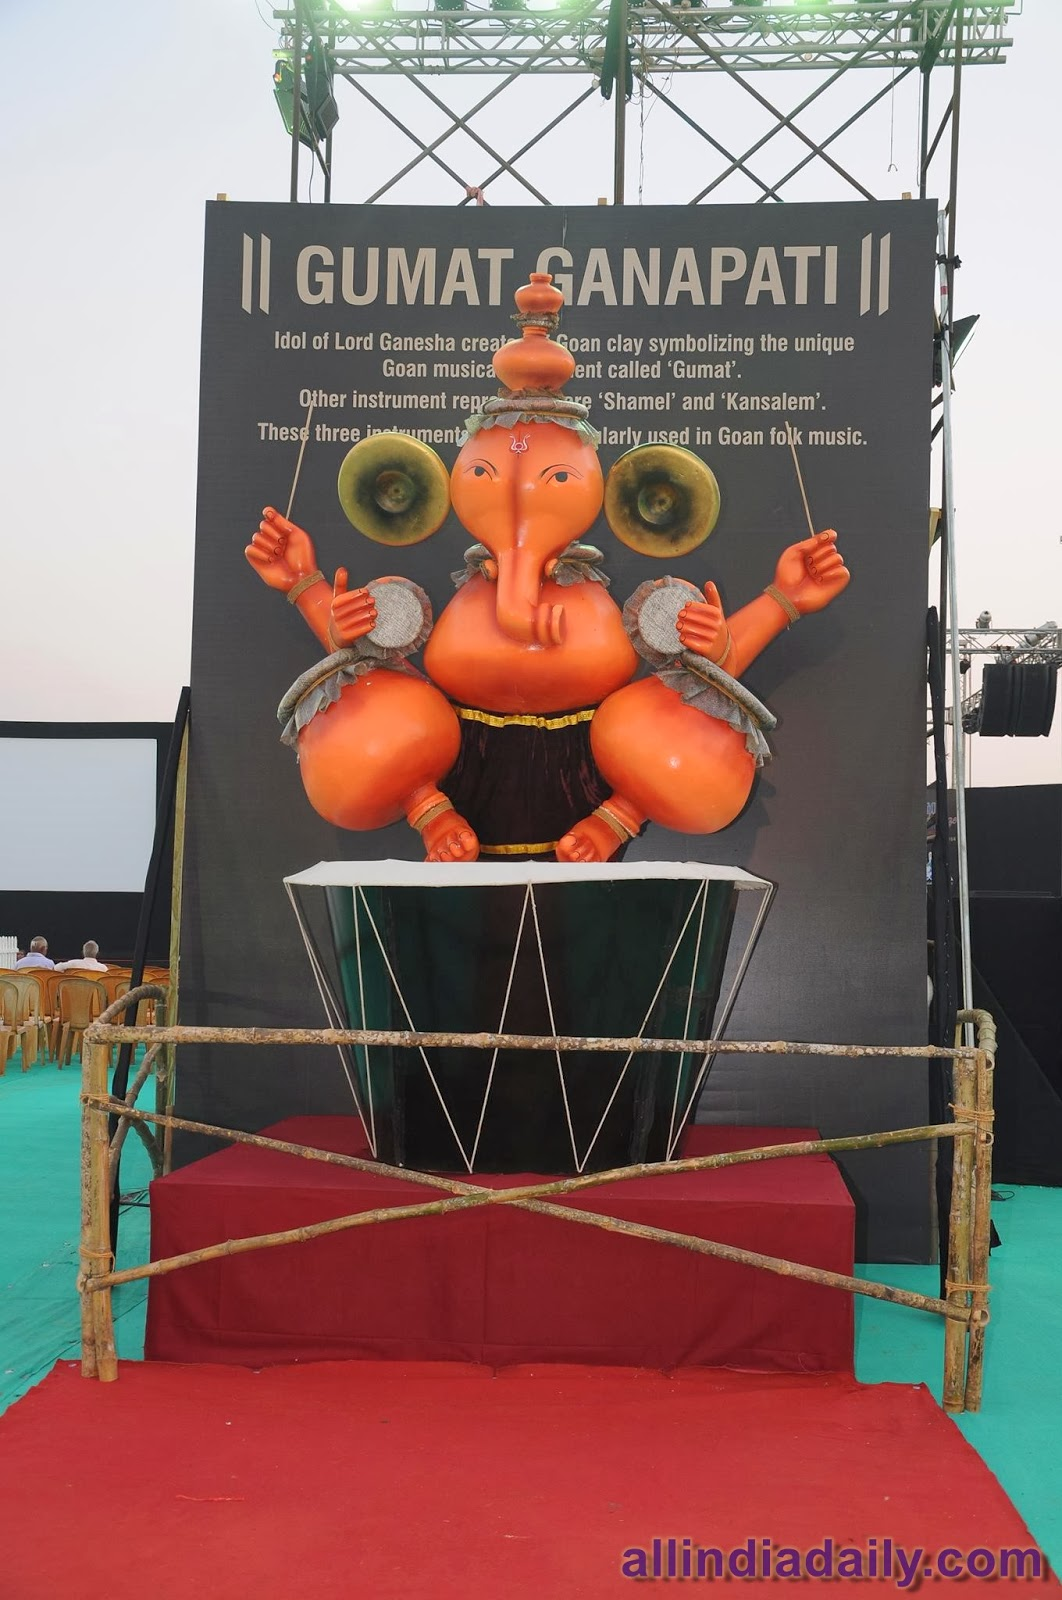 Idol of Lord Ganesha created with the Goan clay symbolizing the unique Go